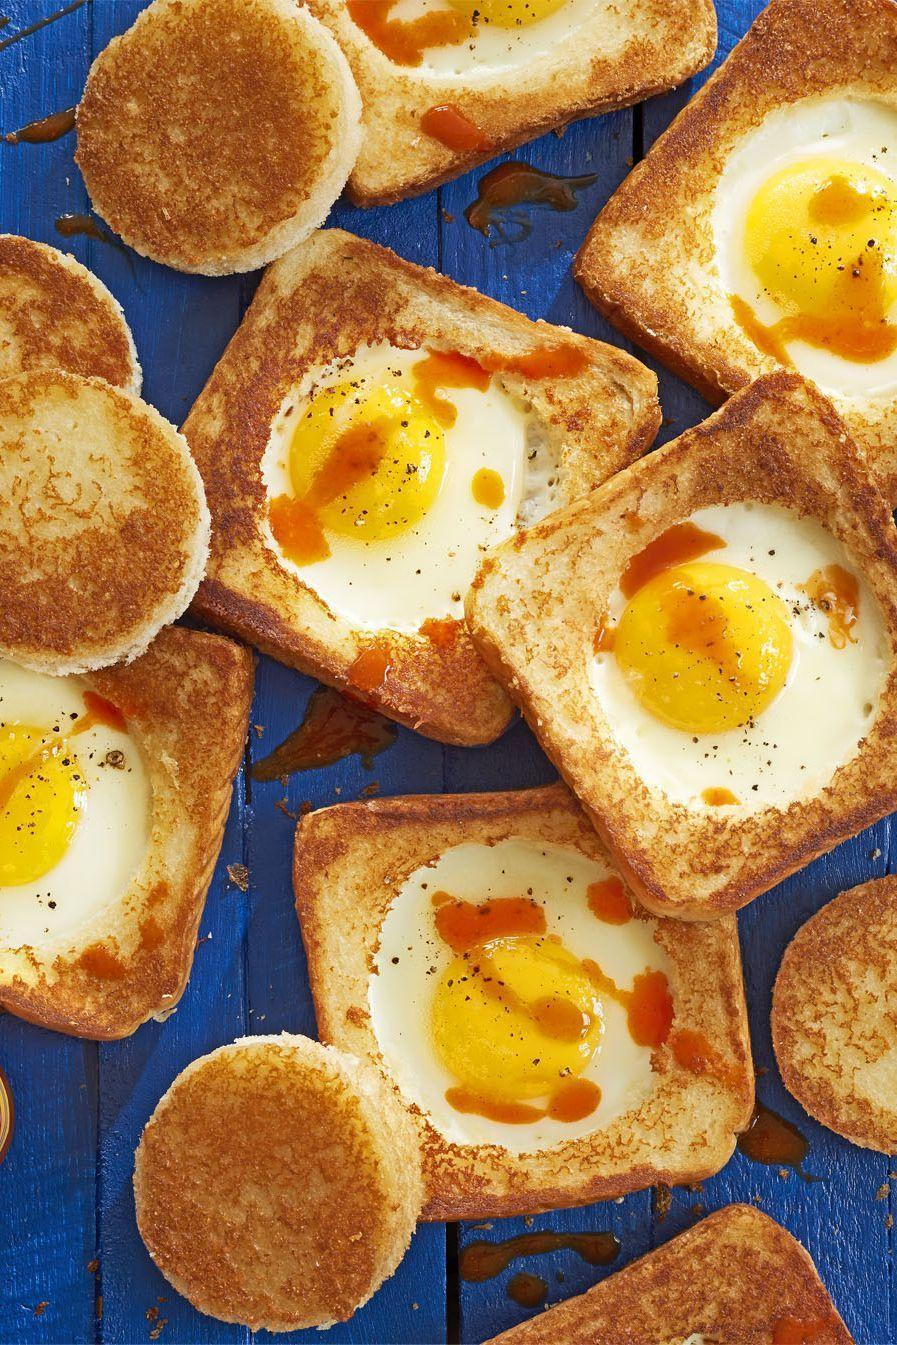 """<p>Hack your way through this finger-licking good breakfast by crisping your favorite toast in a cheesy-mayo spread before dropping your egg into the hot pan.</p><p><a href=""""https://www.countryliving.com/food-drinks/recipes/a41630/parmesan-egg-in-hole-recipe/"""" rel=""""nofollow noopener"""" target=""""_blank"""" data-ylk=""""slk:Get the recipe from Country Living »"""" class=""""link rapid-noclick-resp""""><em>Get the recipe from Country Living »</em></a></p>"""